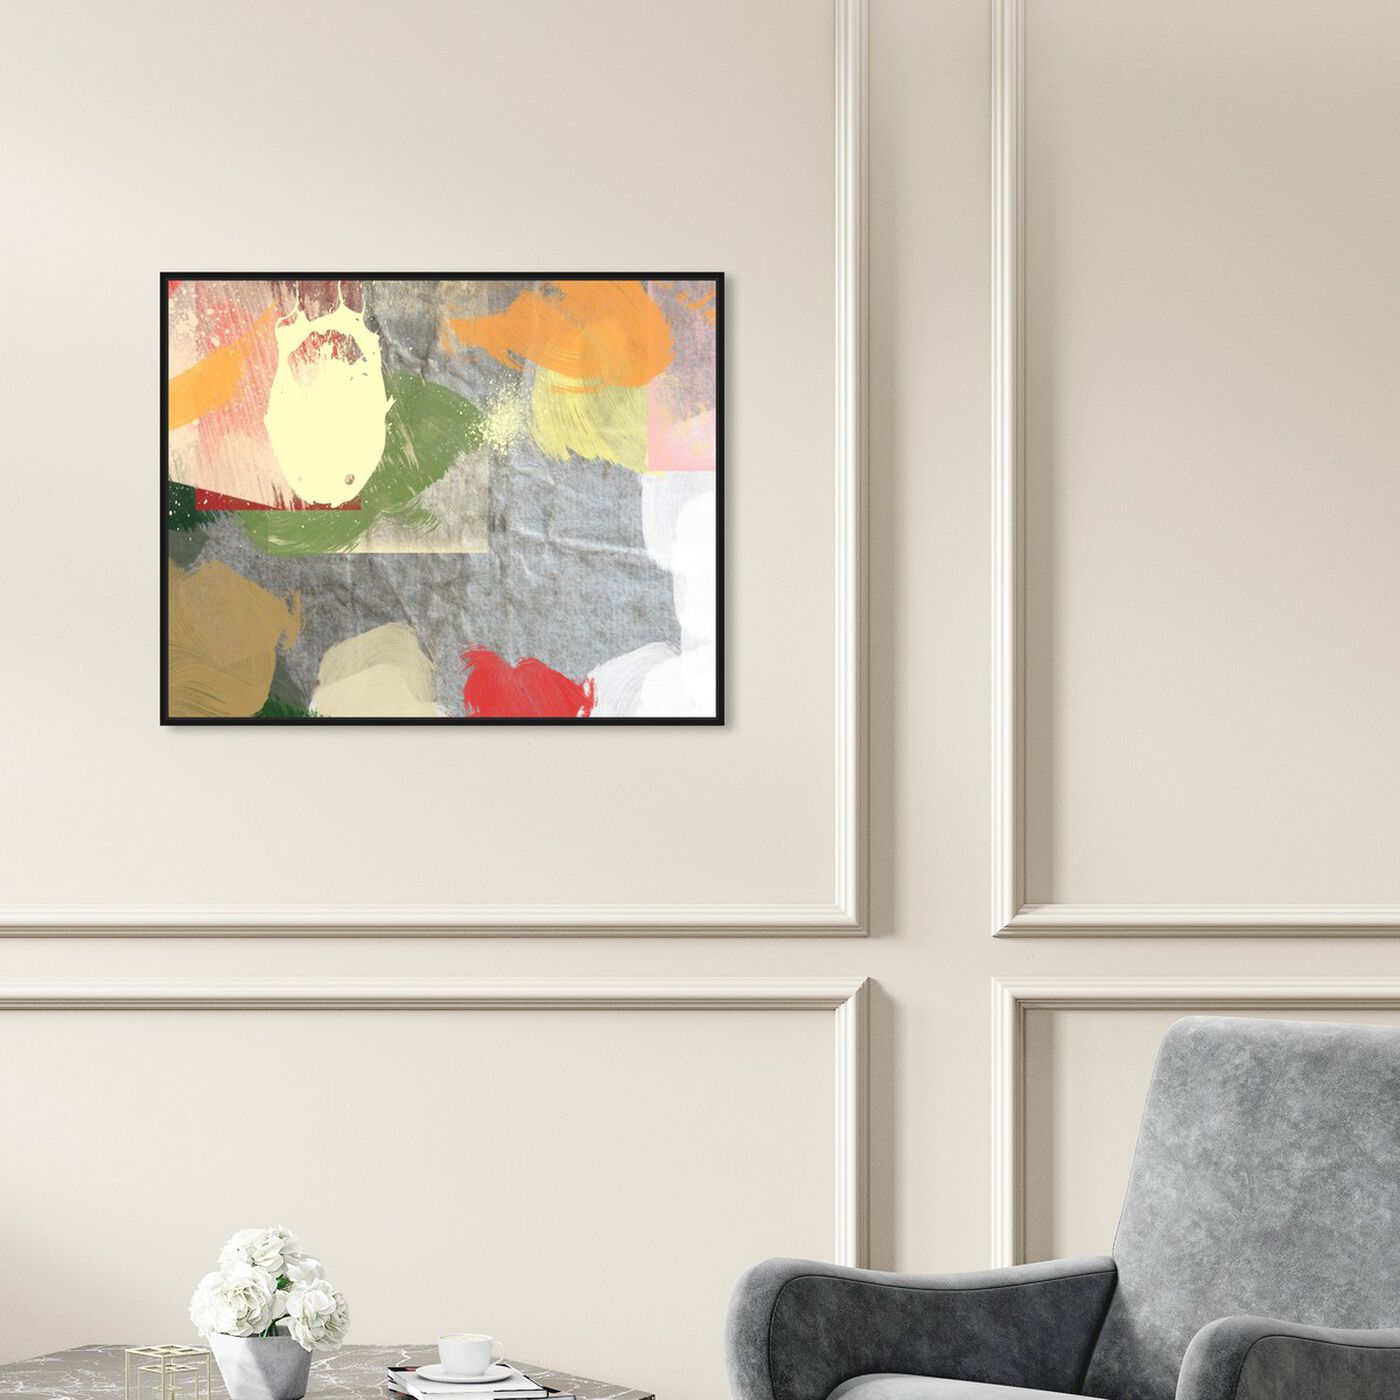 Hanging view of Sand Storm featuring abstract and paint art.